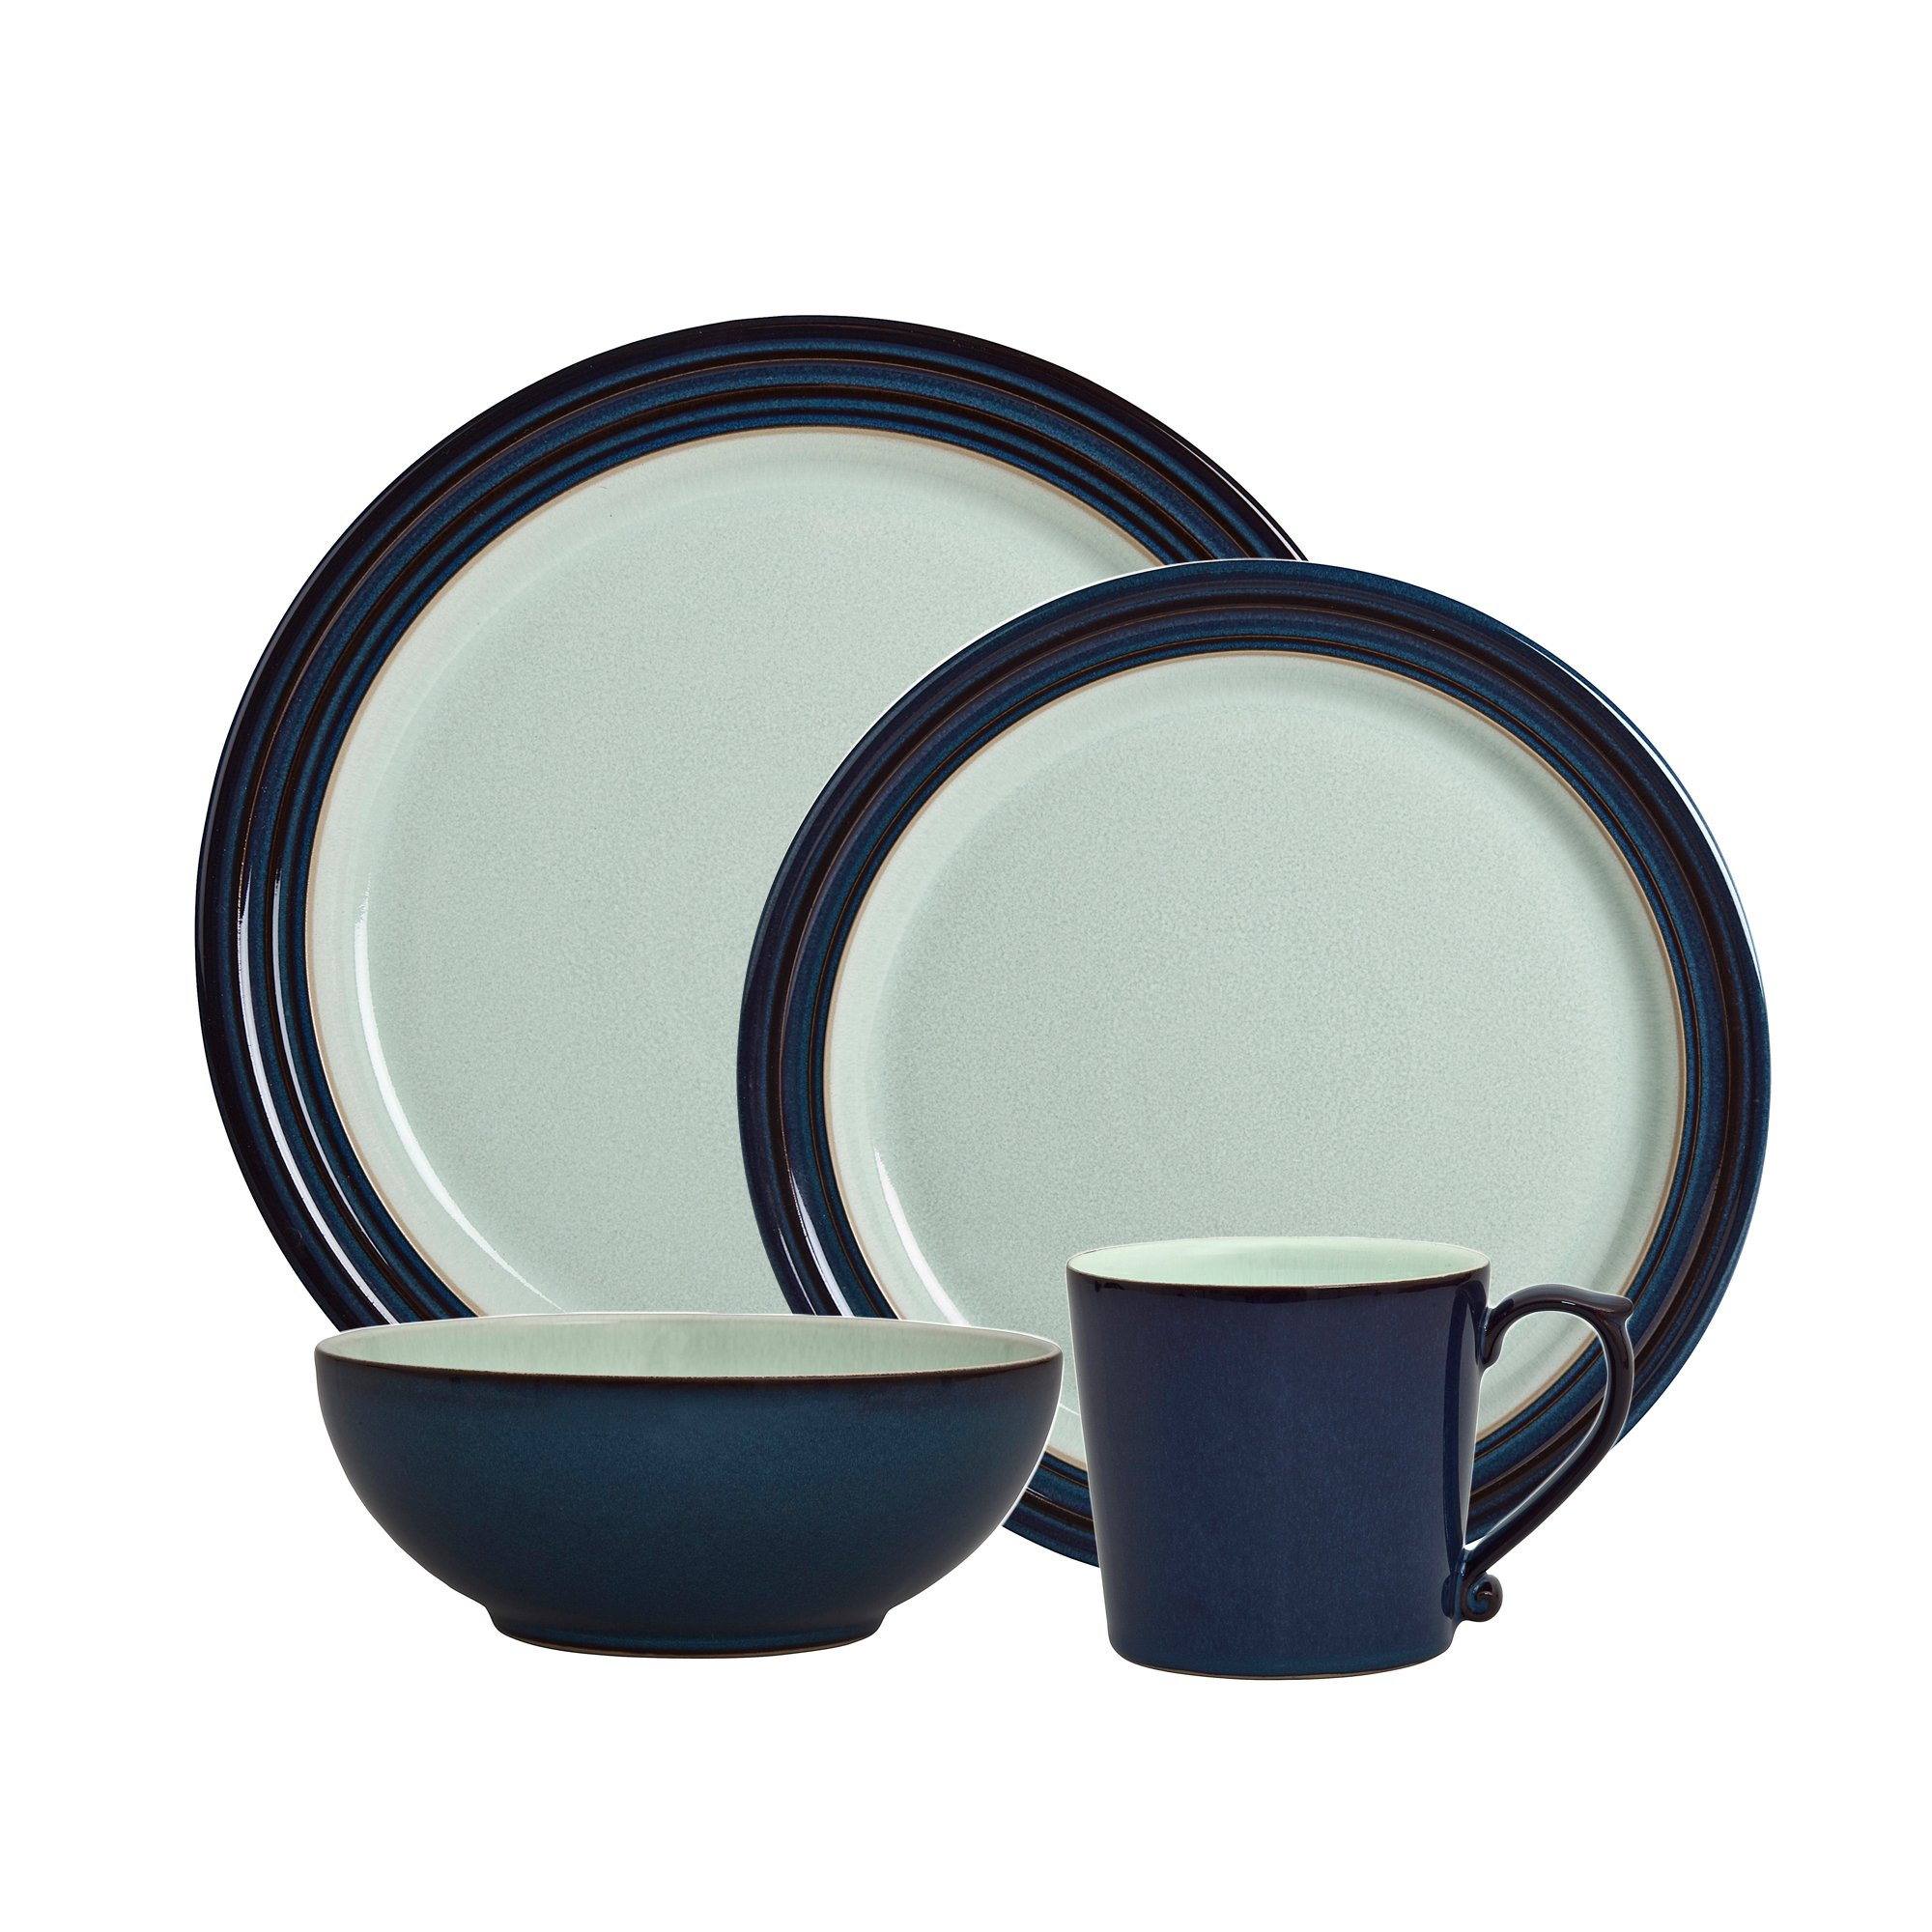 Denby USA Peveril 4 Piece Place Setting Dinnerware Set, Blue